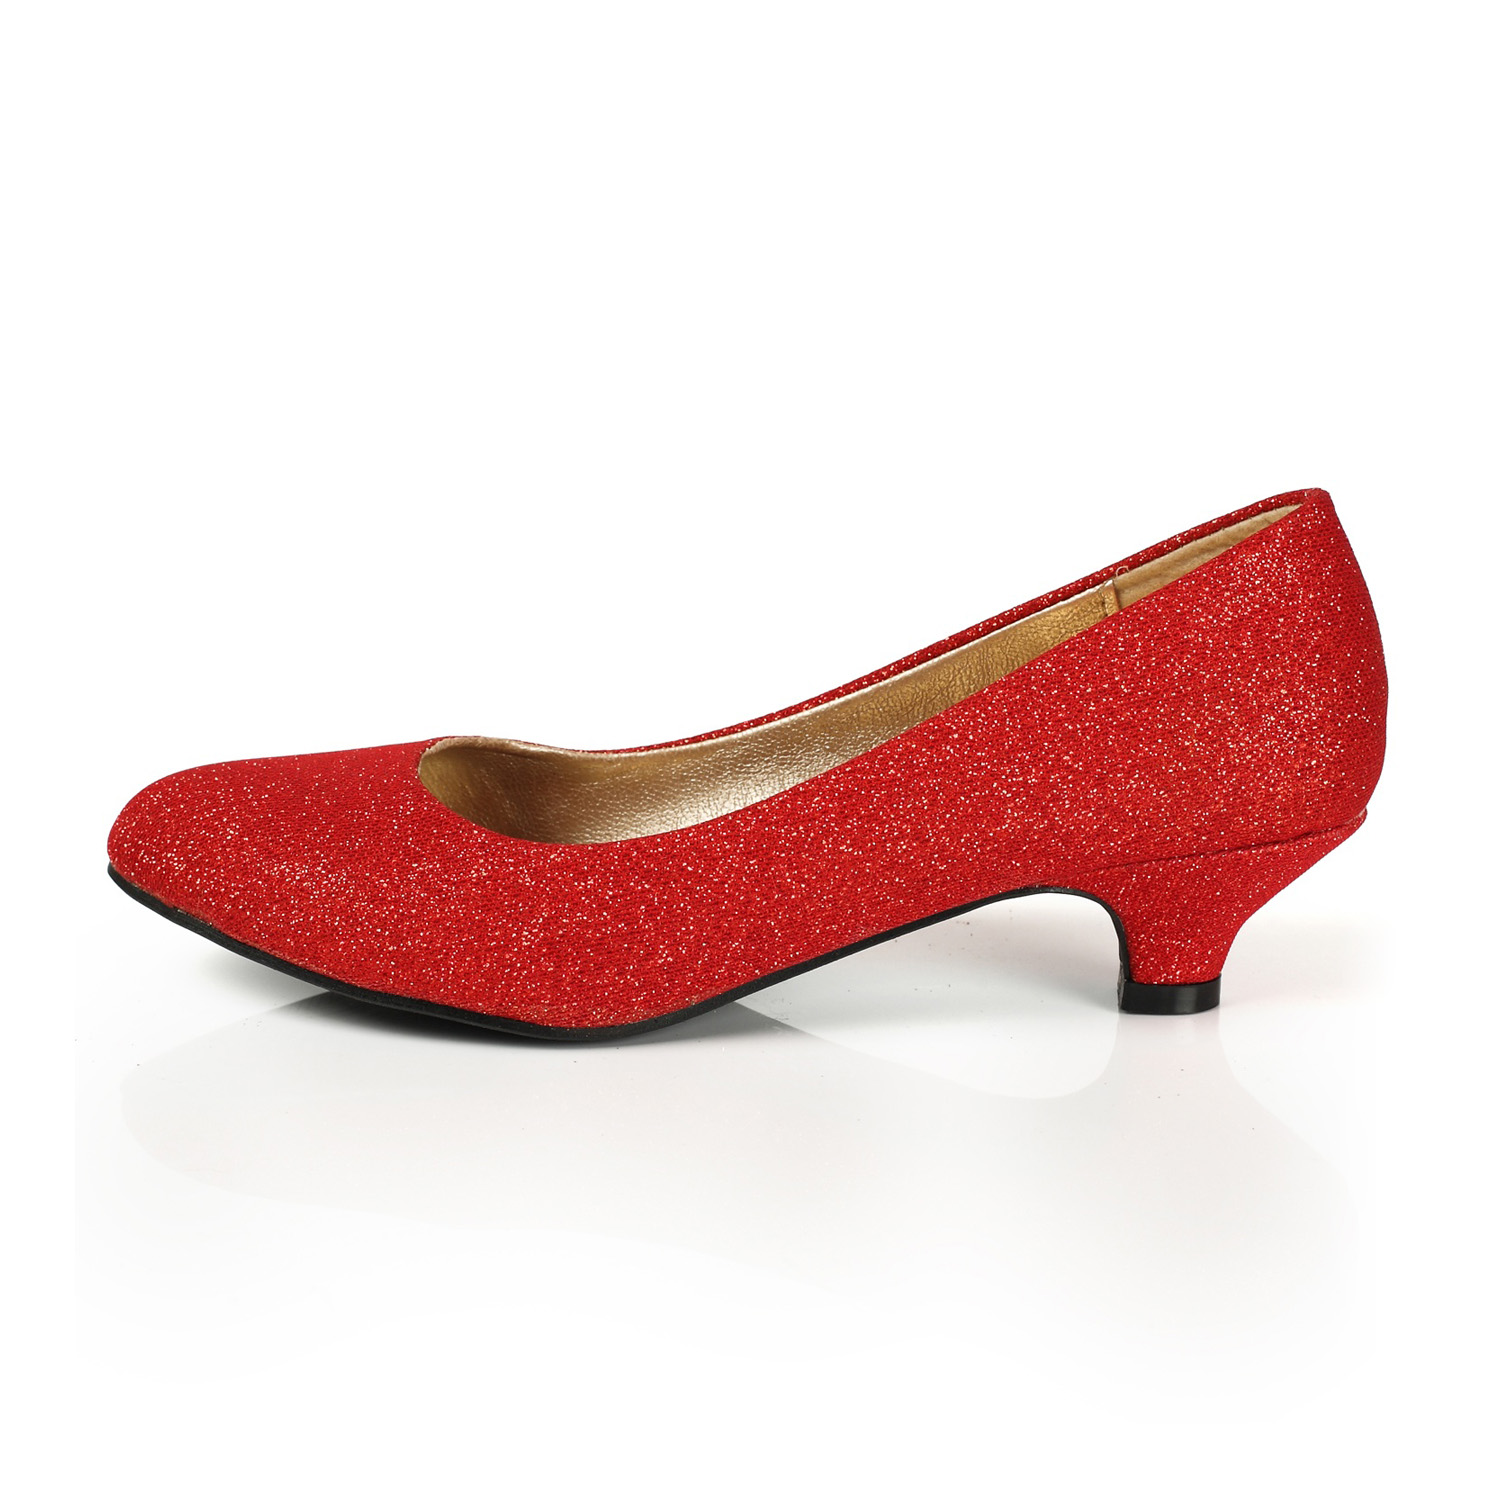 Low heel red dress sandals low heel sandals for Red dress shoes for wedding